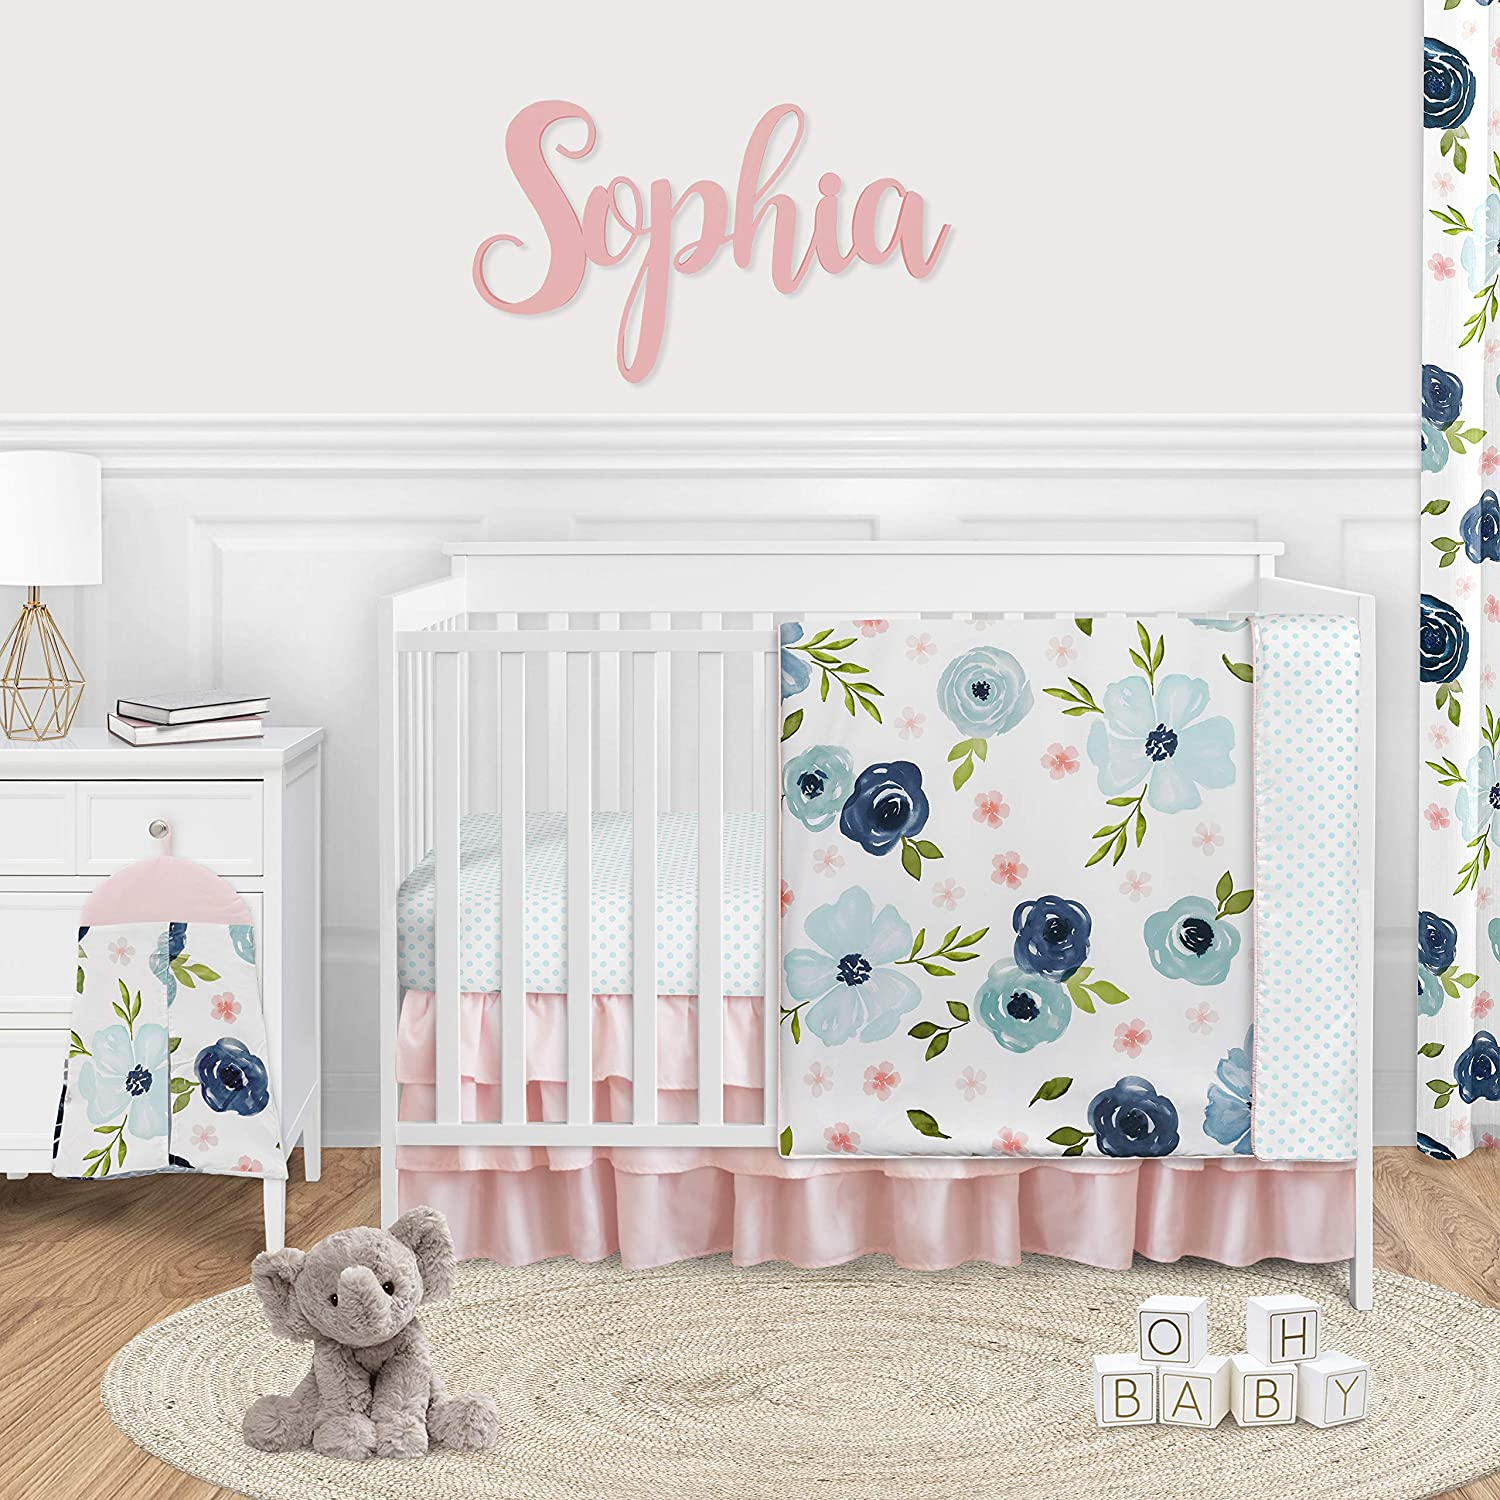 Sweet Jojo Designs Navy Blue and Pink Watercolor Floral Baby Girl Nursery Crib Bedding Set - 4 Pieces - Blush, Green and White Shabby Chic Rose Flower Polka Dot